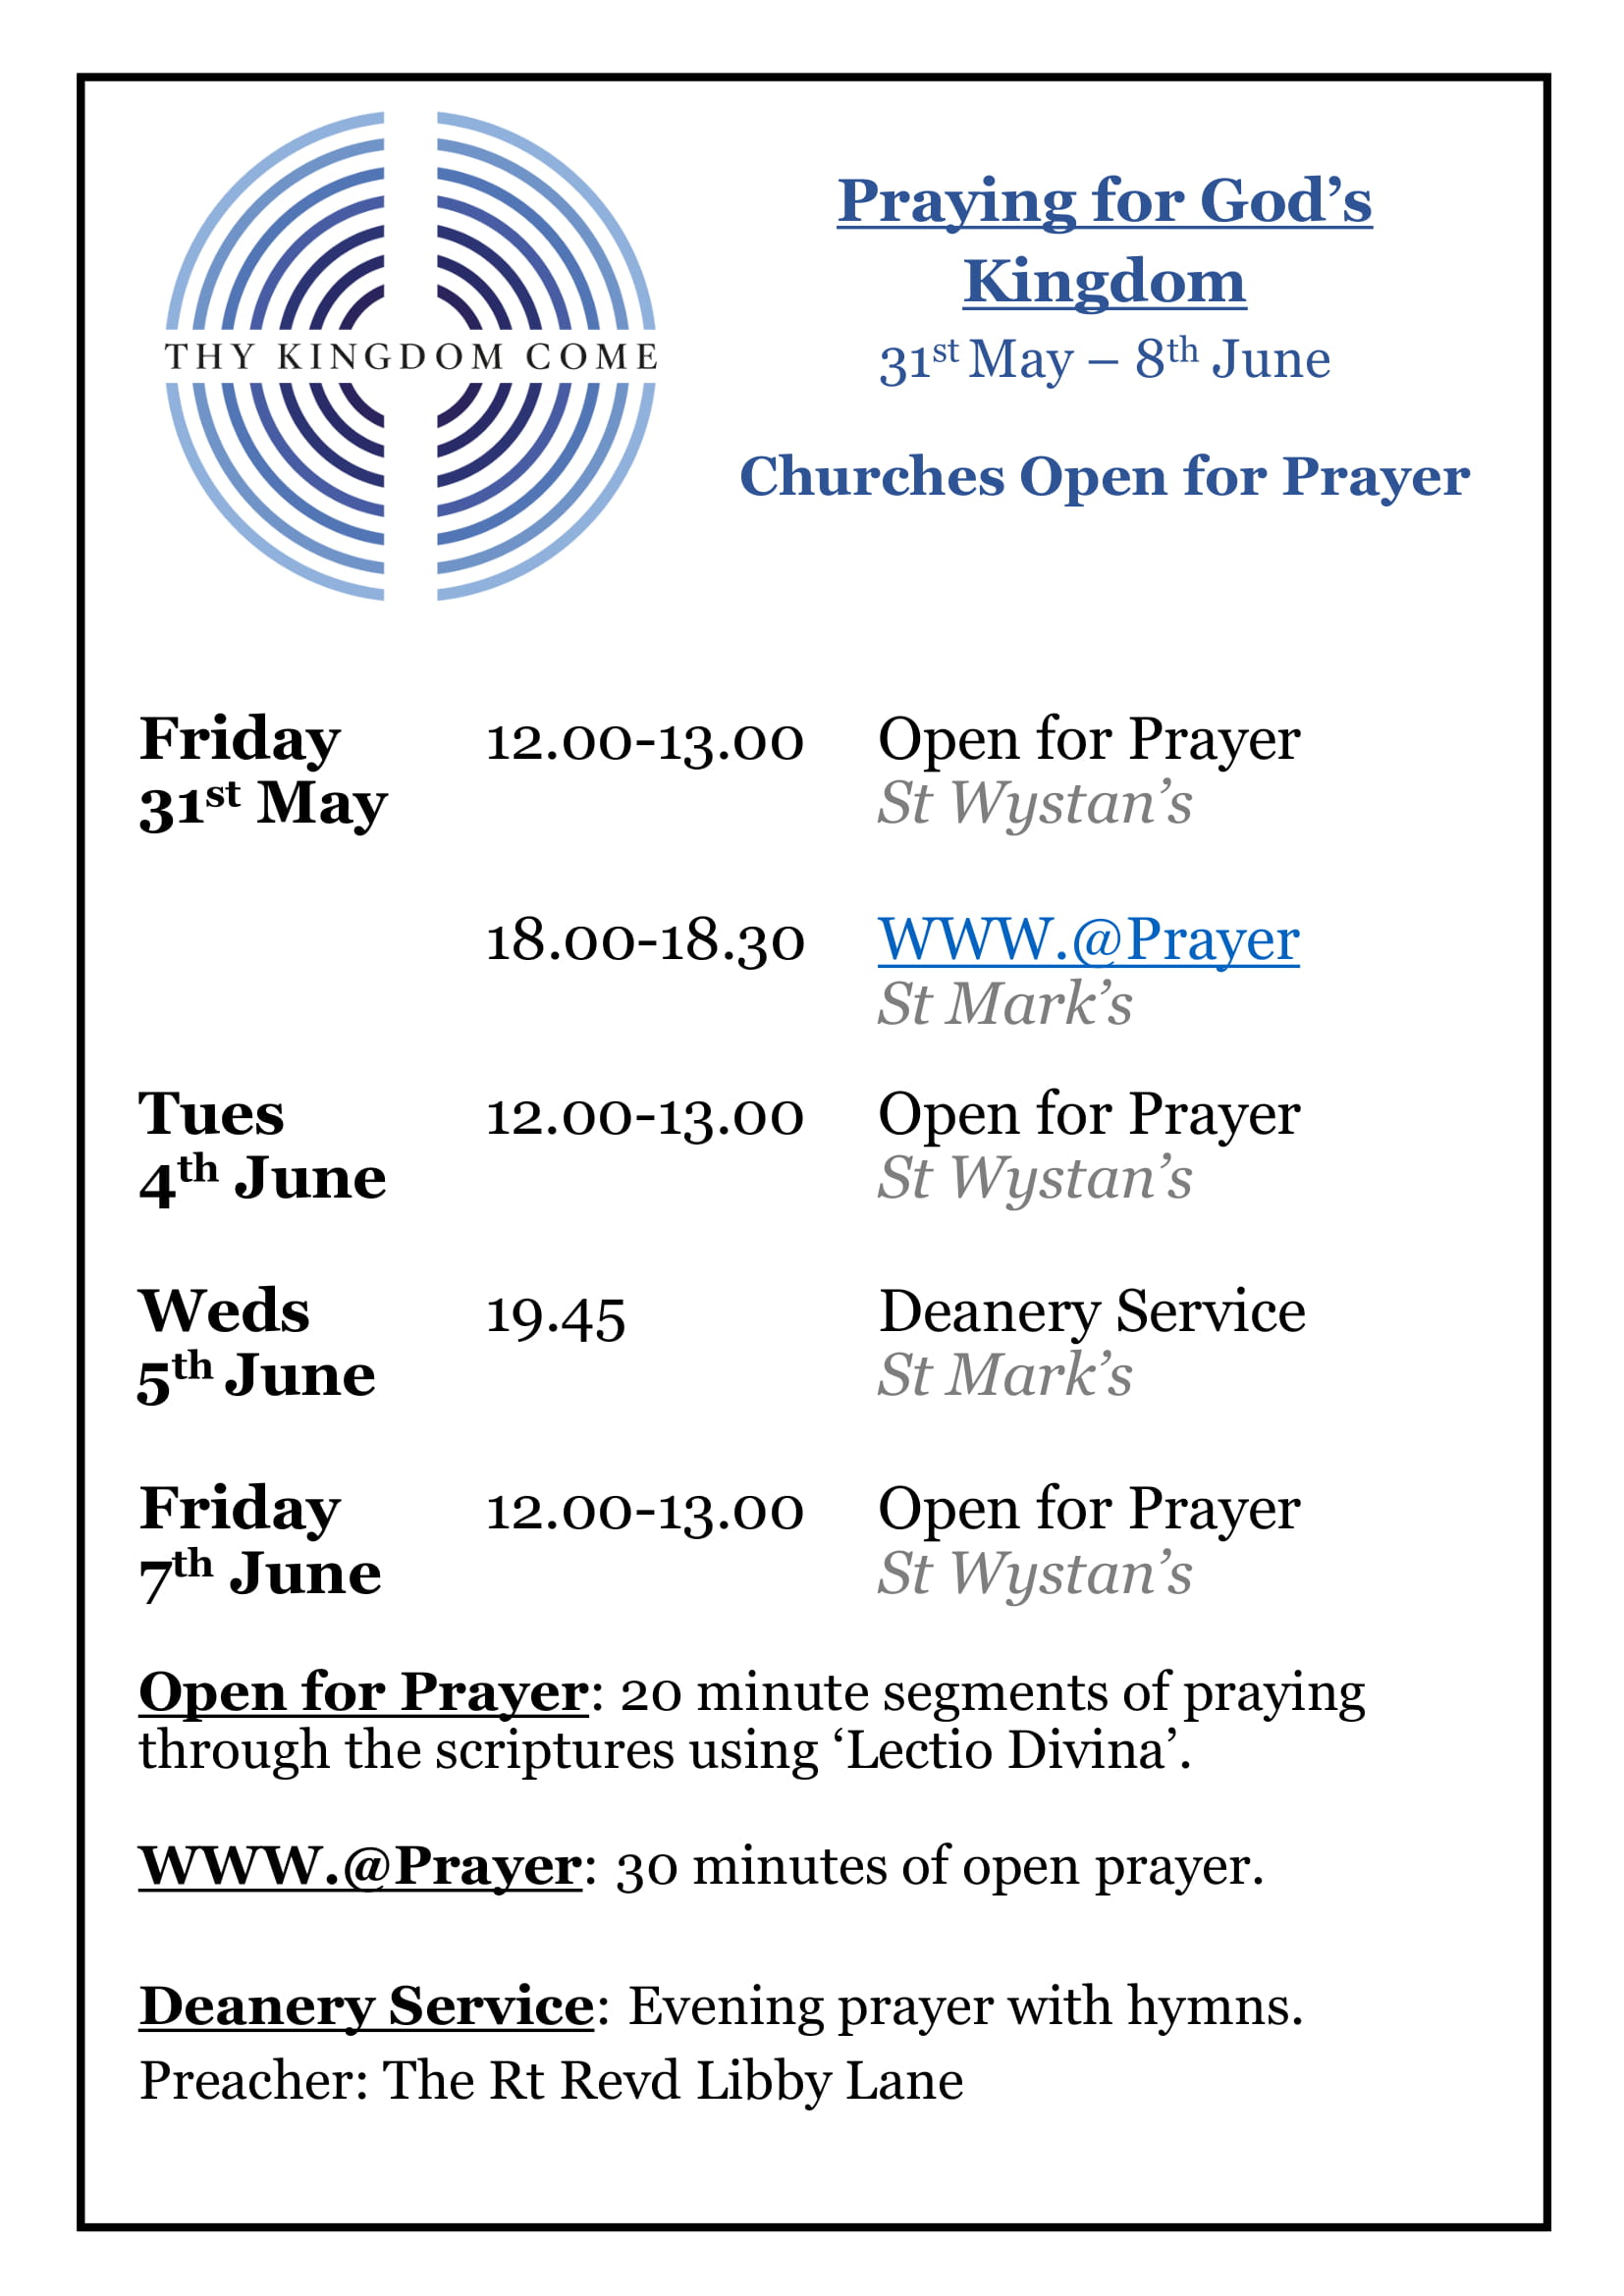 Churches Open for Prayer June 2019